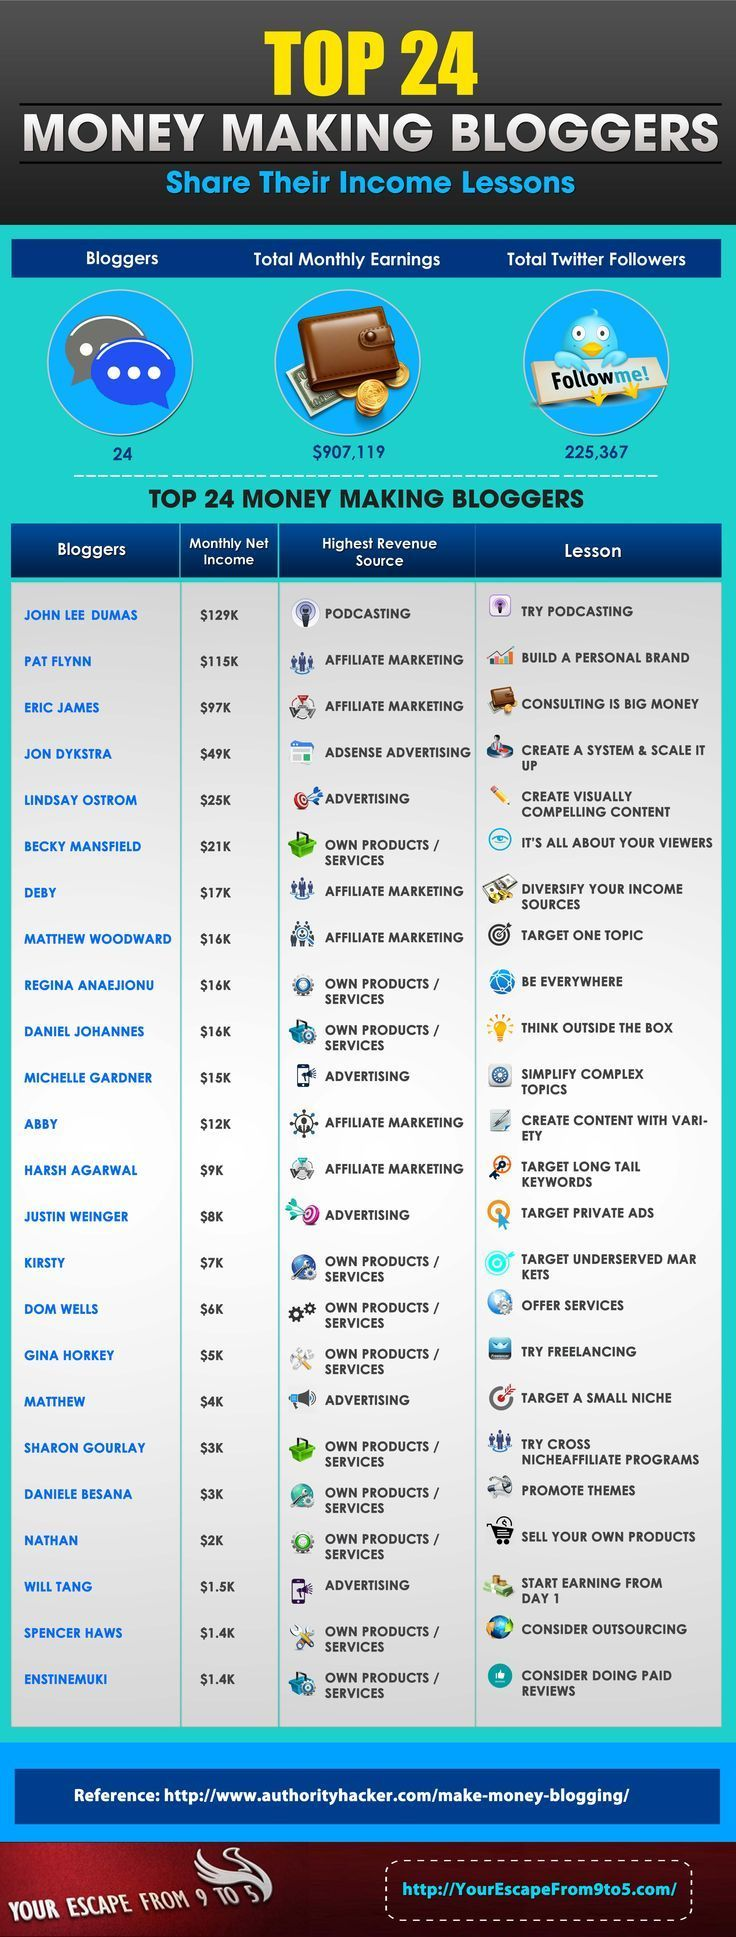 Top 24 Money Making Bloggers and Income Lessons Infographic…